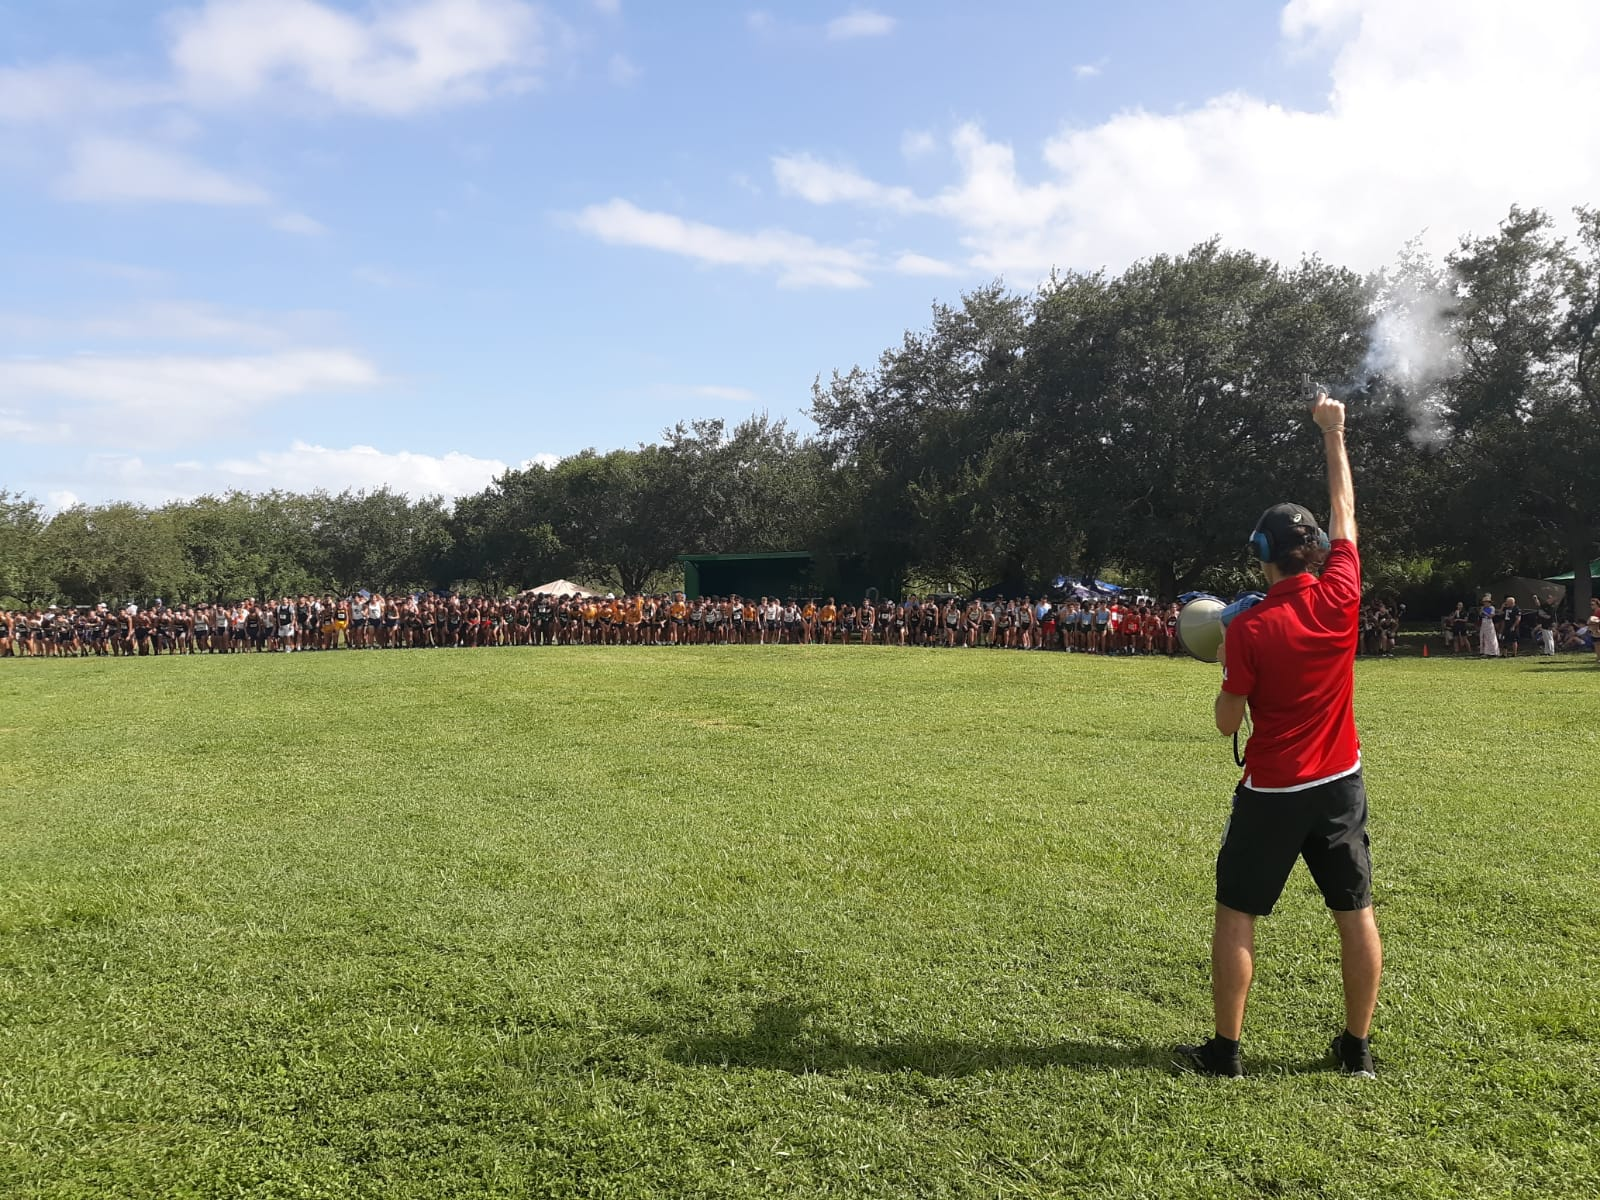 Cross Country Head Coach Ryan Raposo starting the Cross Country meet